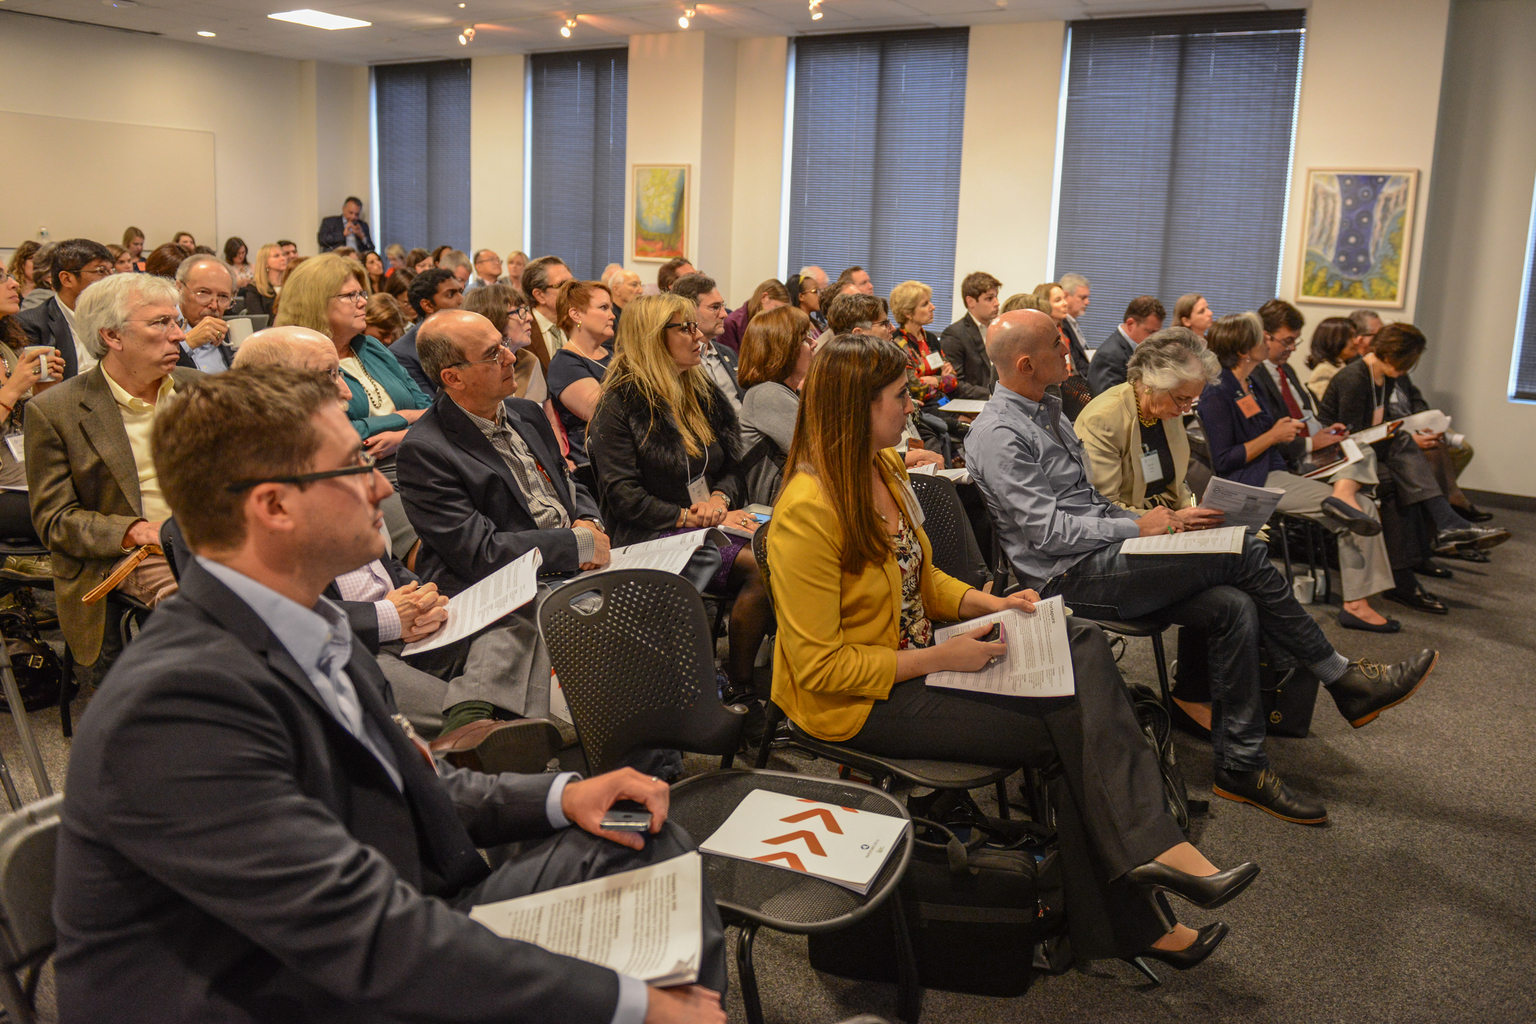 Investors attend our Boston Beyond the Pitch Event last week where 50% of the entrepreneurs were women.